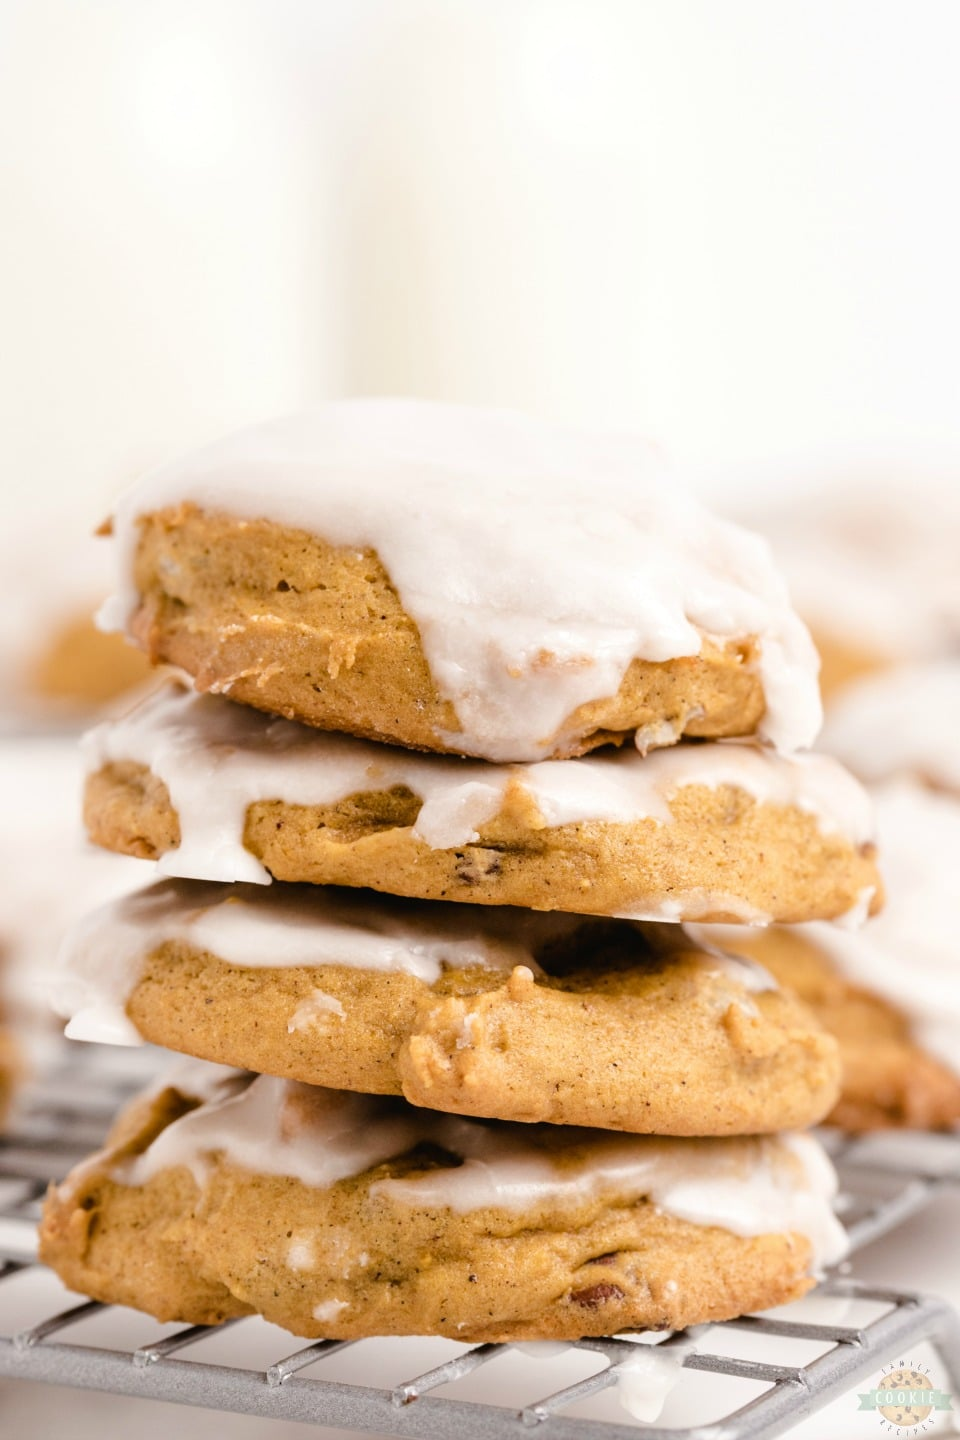 Iced Pumpkin Cookies are spiced with cinnamon, nutmeg & vanilla for a soft & sweet pumpkin dessert. These easy pillowy pumpkin cookies iced with smooth vanilla icing are perfect for pumpkin lovers!